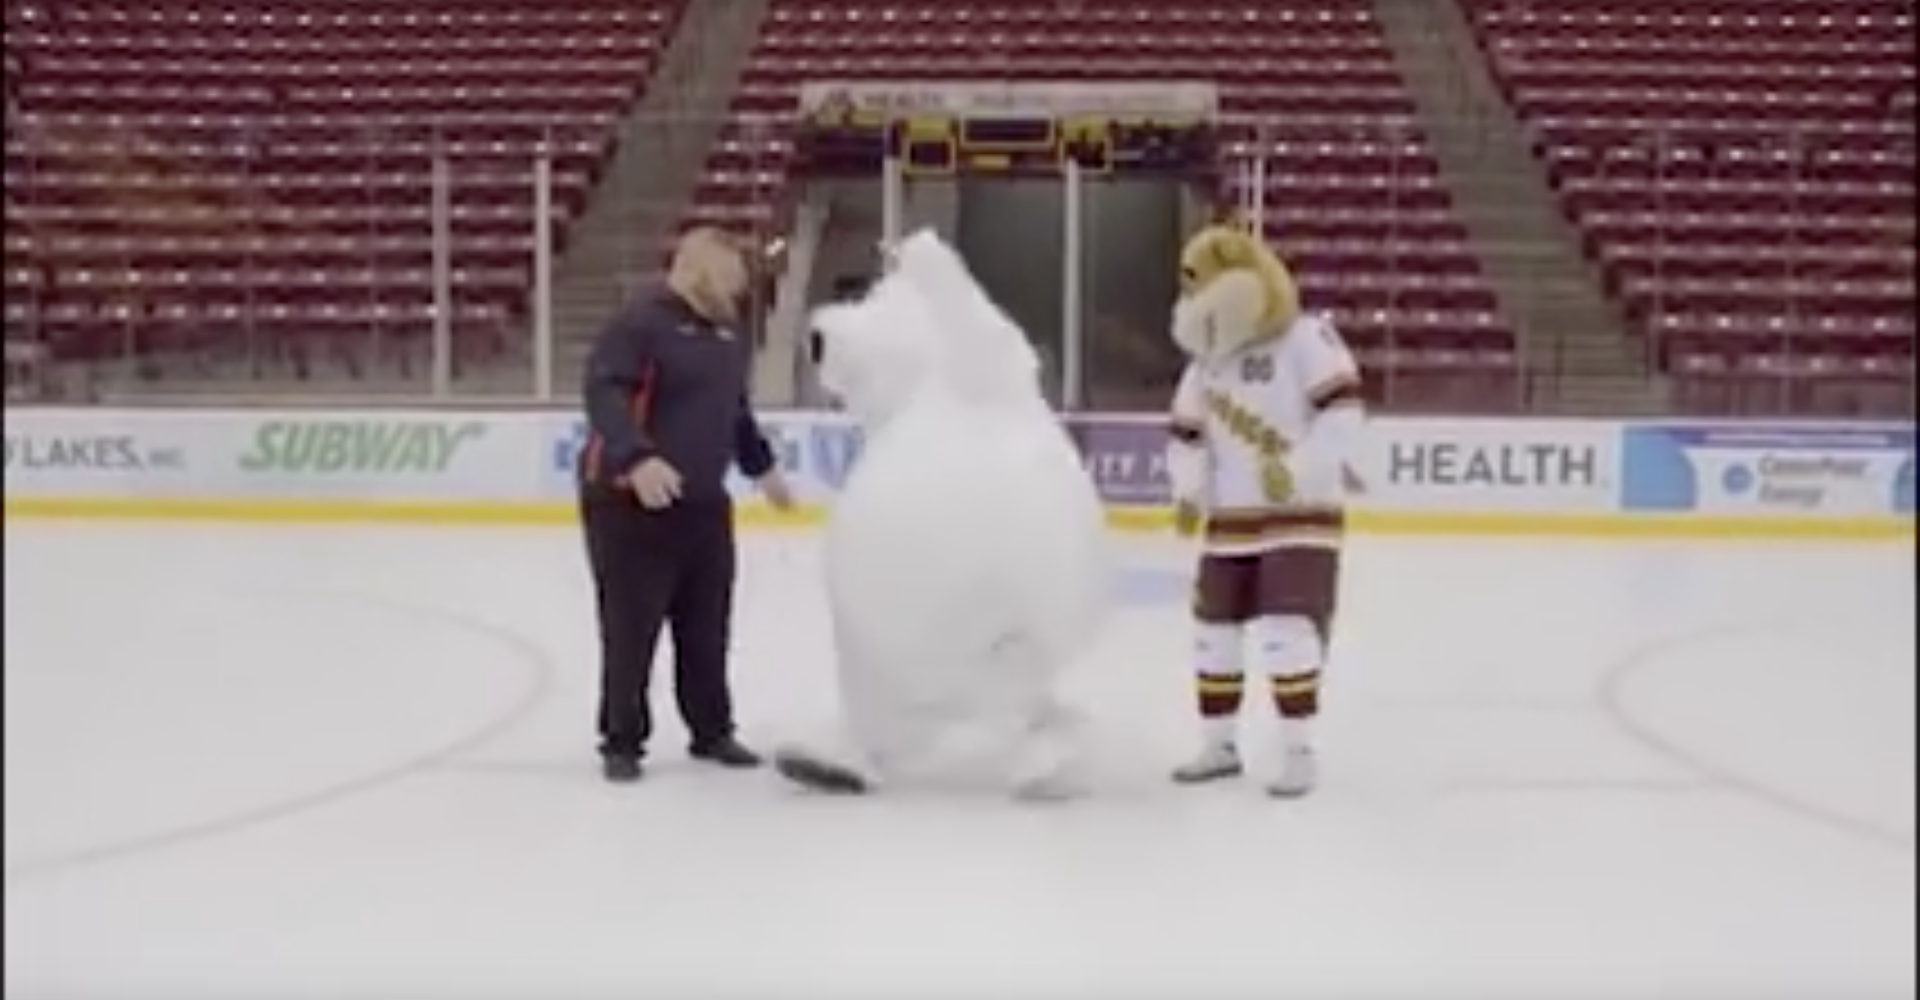 That'll Do Ice-ly! Hilarious Mitsubishi Car Dealer Advert Outtakes Video Goes Viral